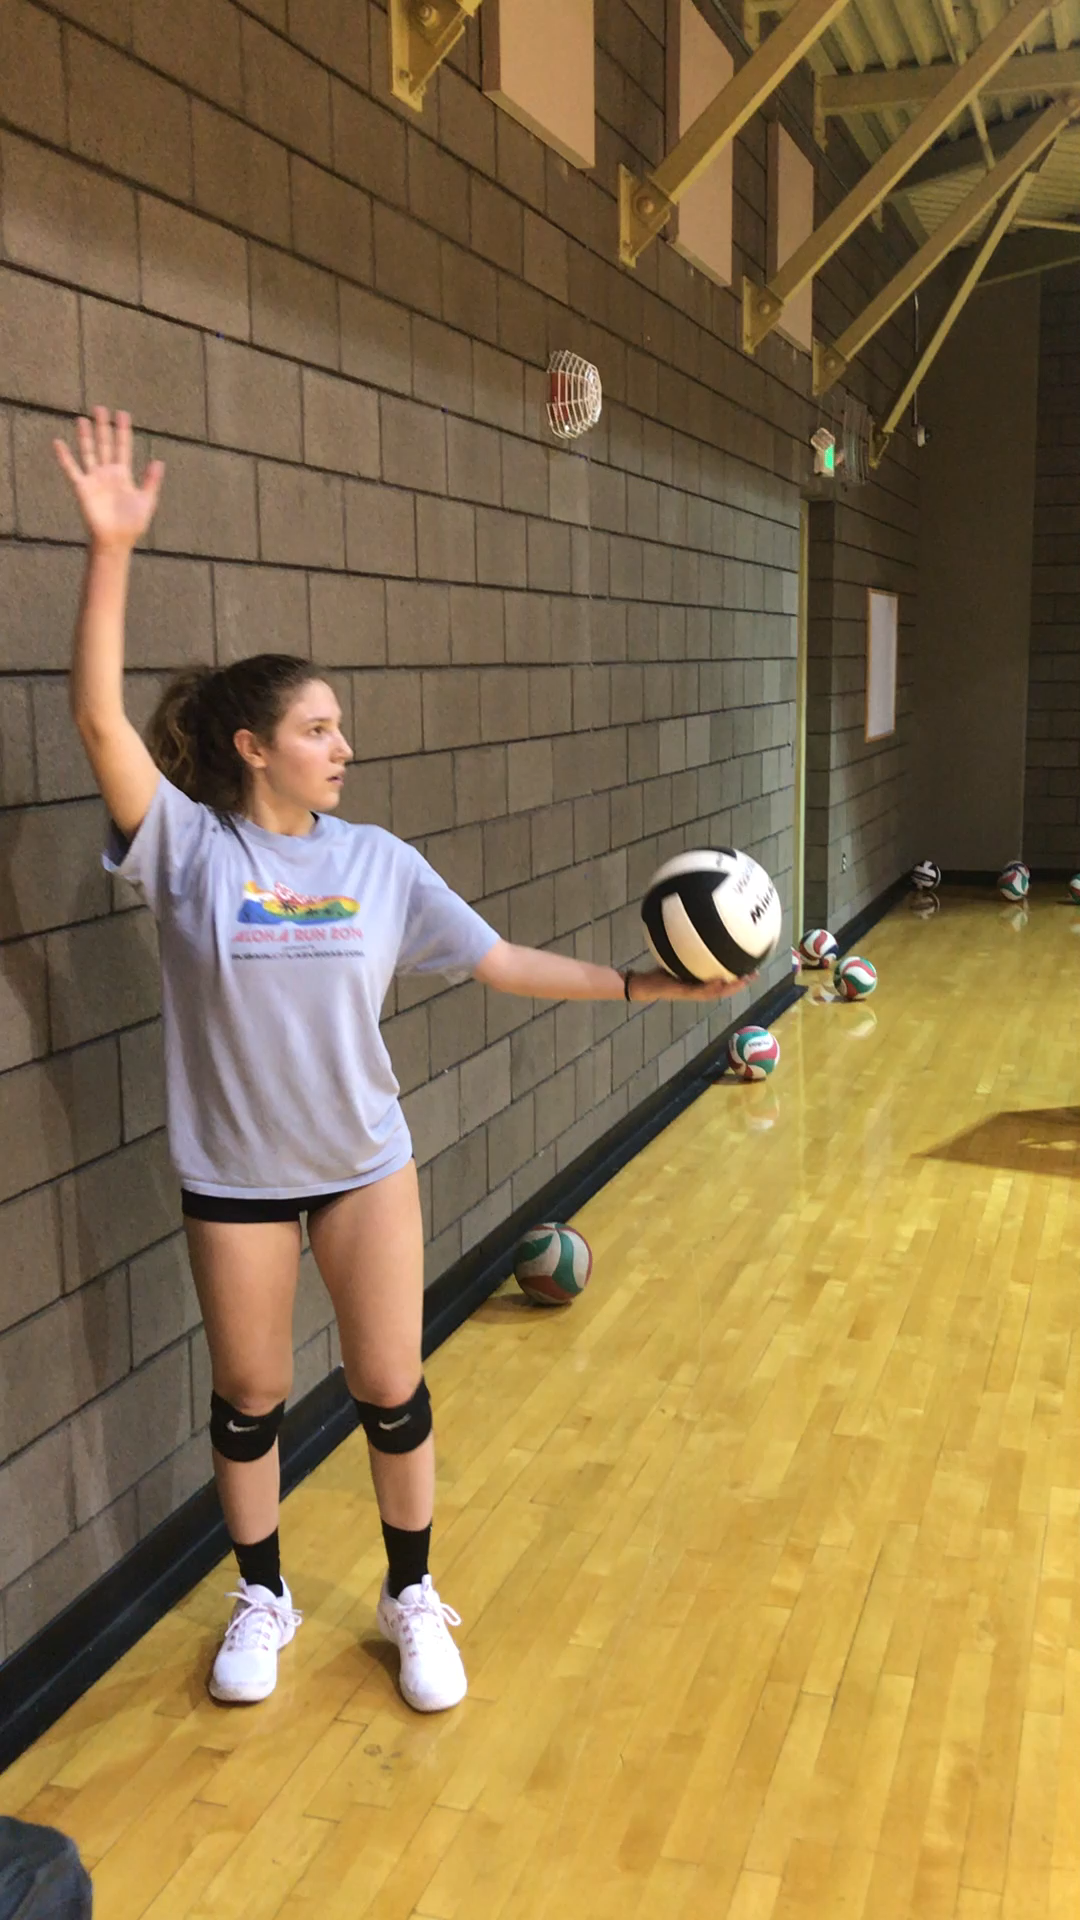 Serving Volleyball Drills Video Volleyball Drills Volleyball Workouts Coaching Volleyball